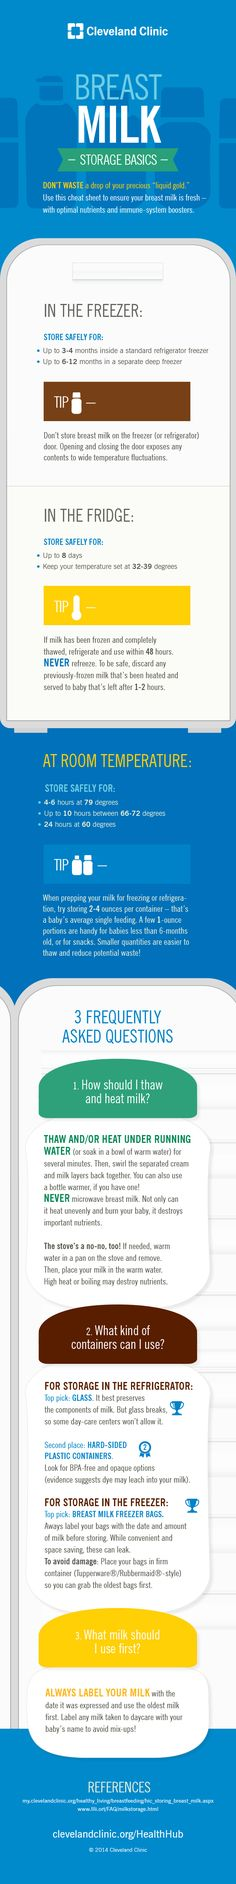 How long is breast milk safe in the fridge, freezer – and more. Infographic on HealthHub from Cleveland Clinic